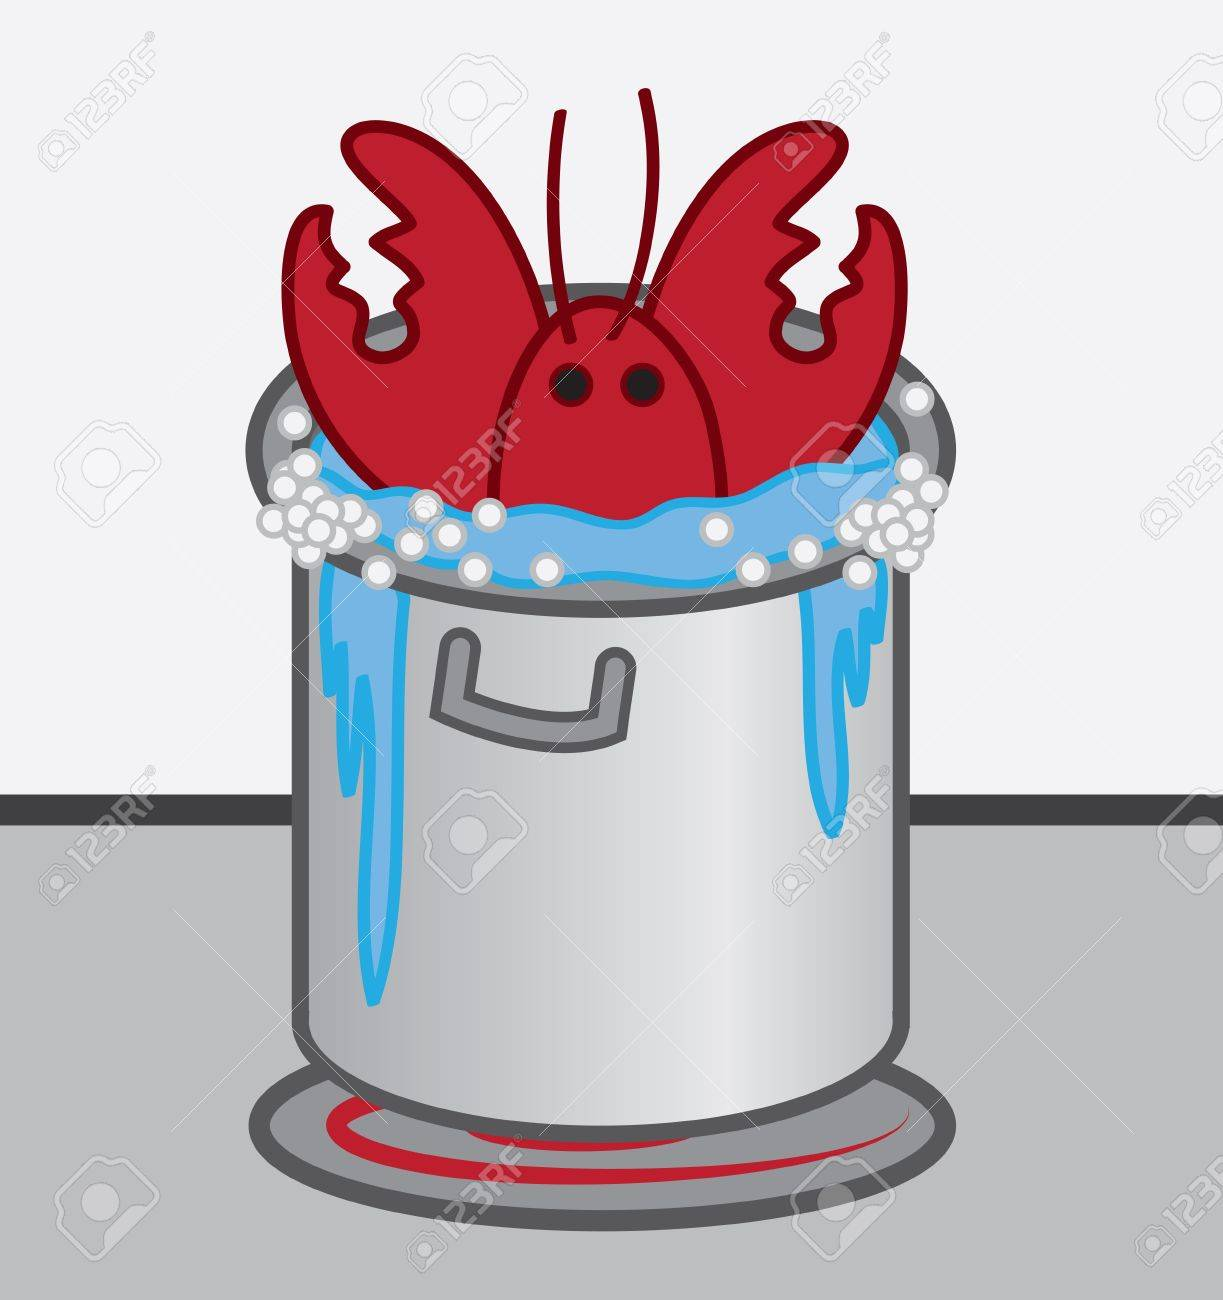 lobster cooked in boiling pot of water royalty free cliparts rh 123rf com Lobster Pot Illustration Lobster Buoy Shape Clip Art